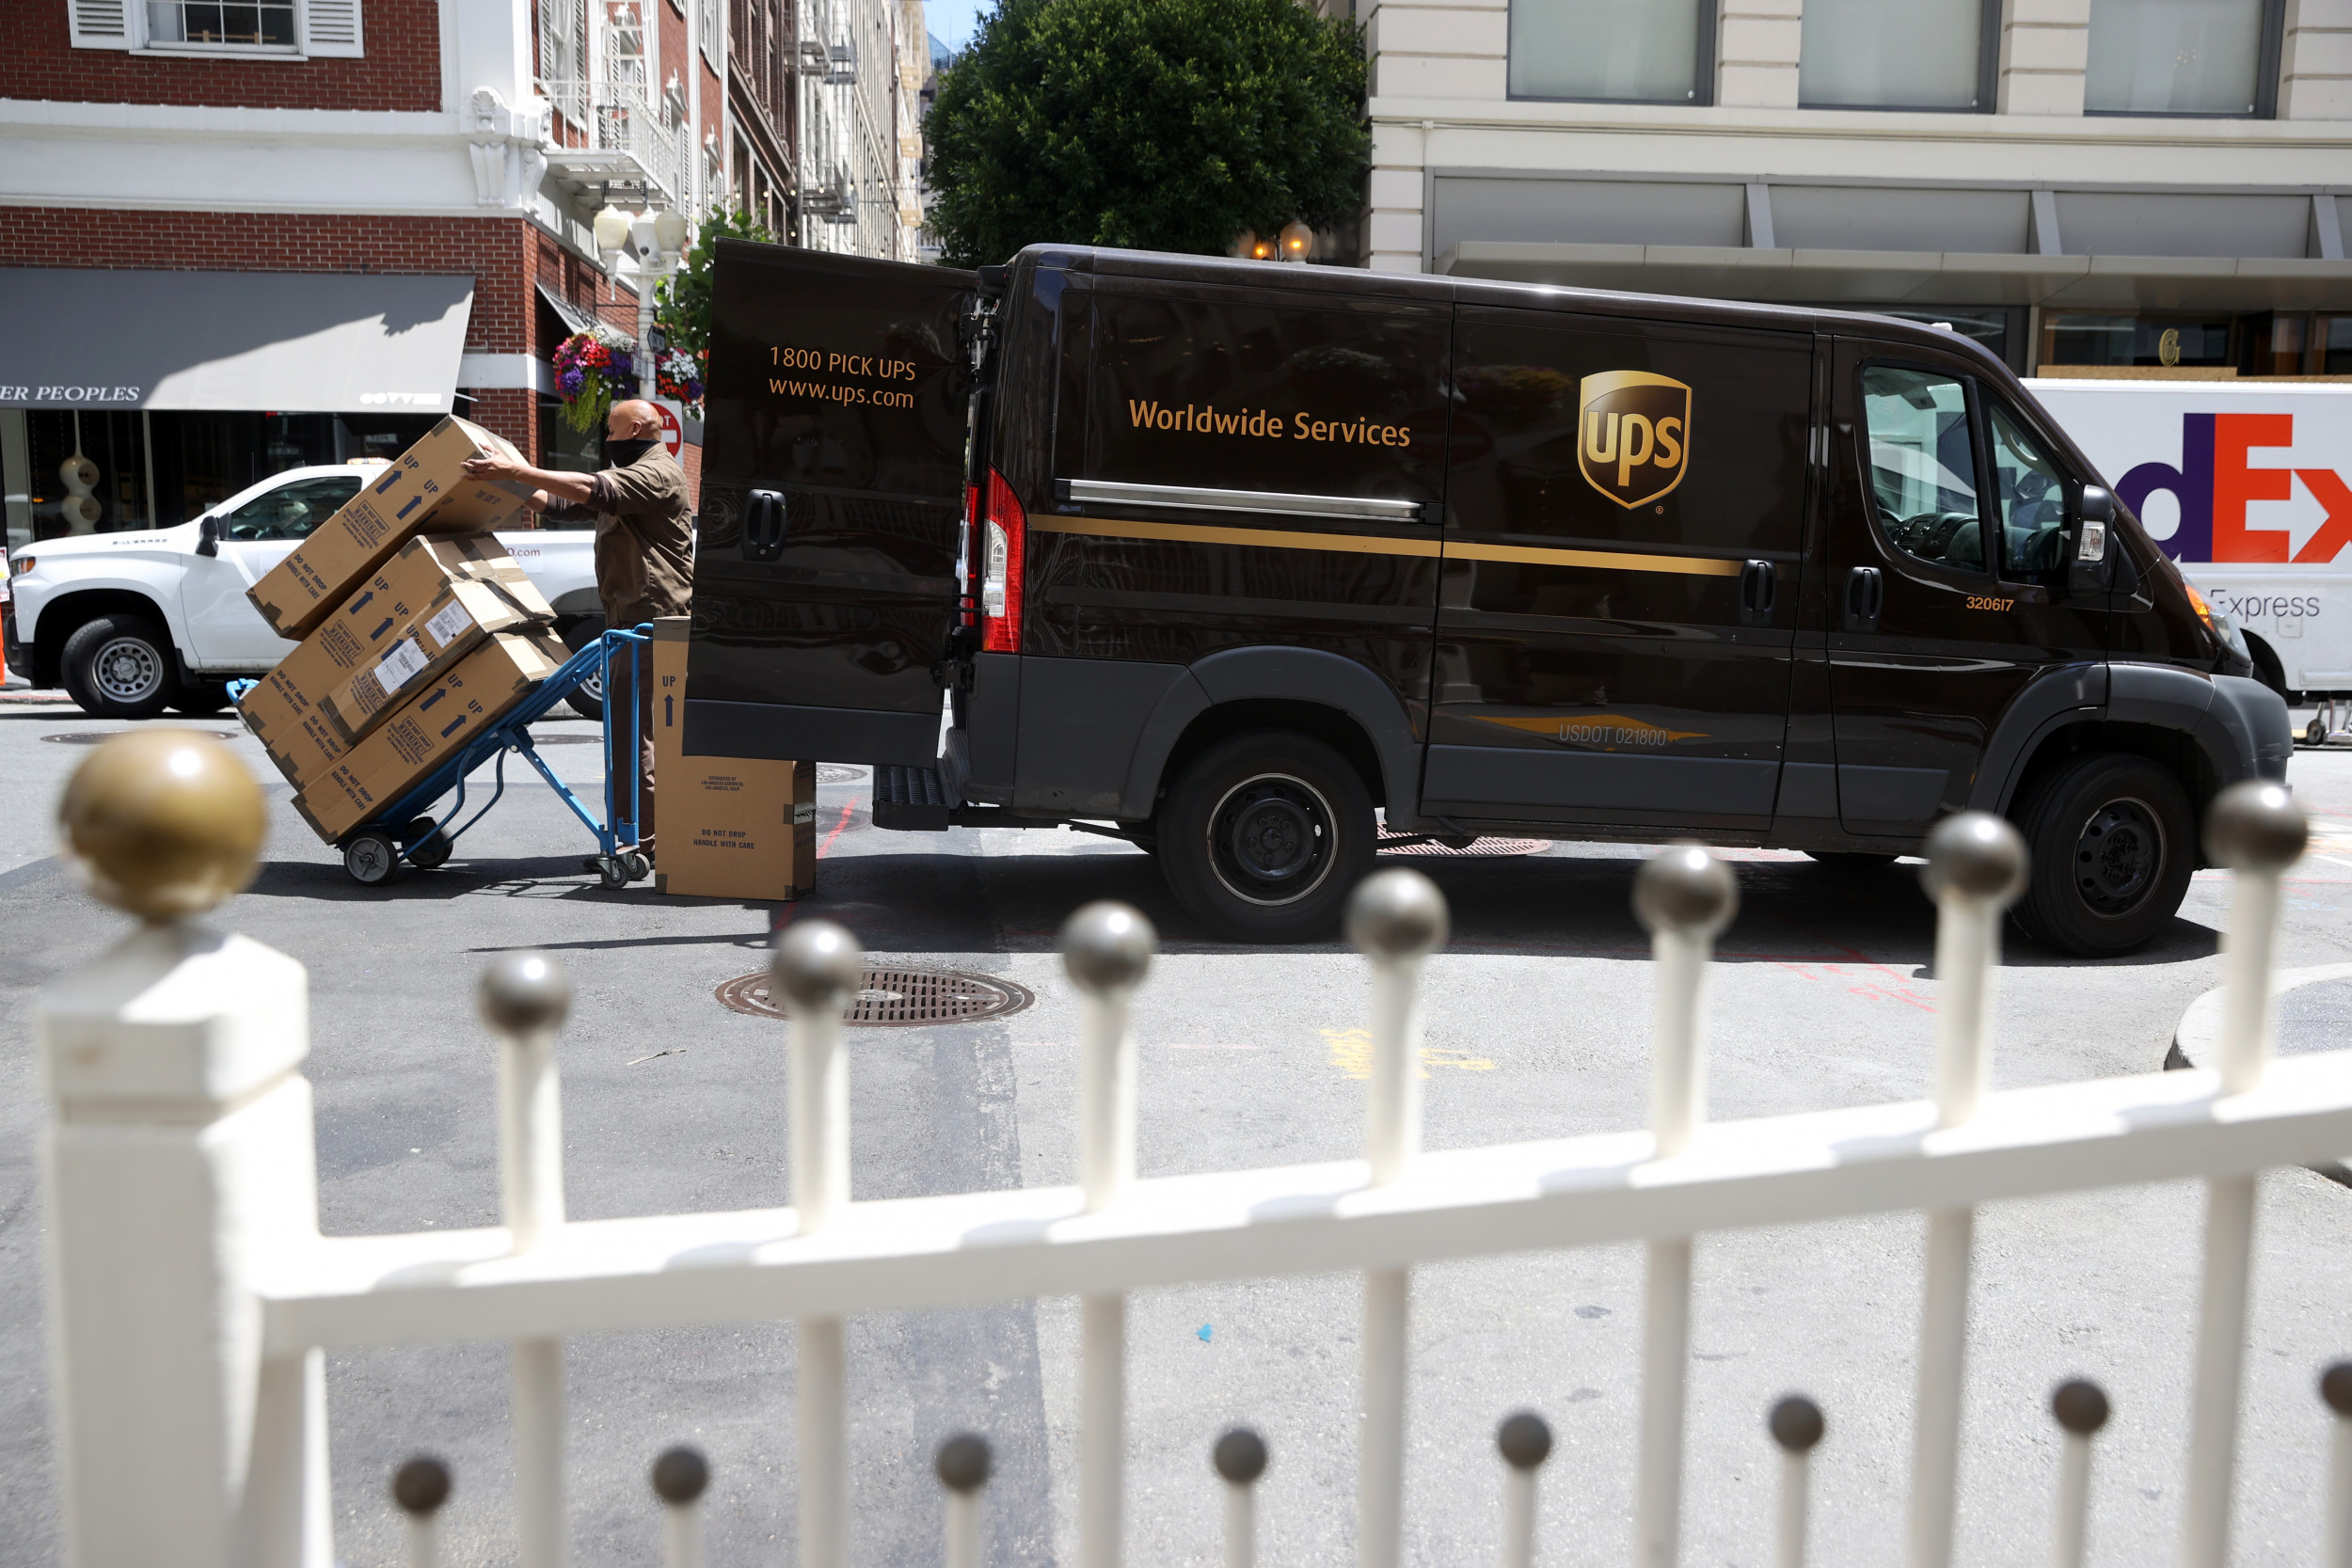 UPS locates contents of Tucker Carlson's package after he said incriminating Biden documents went missing